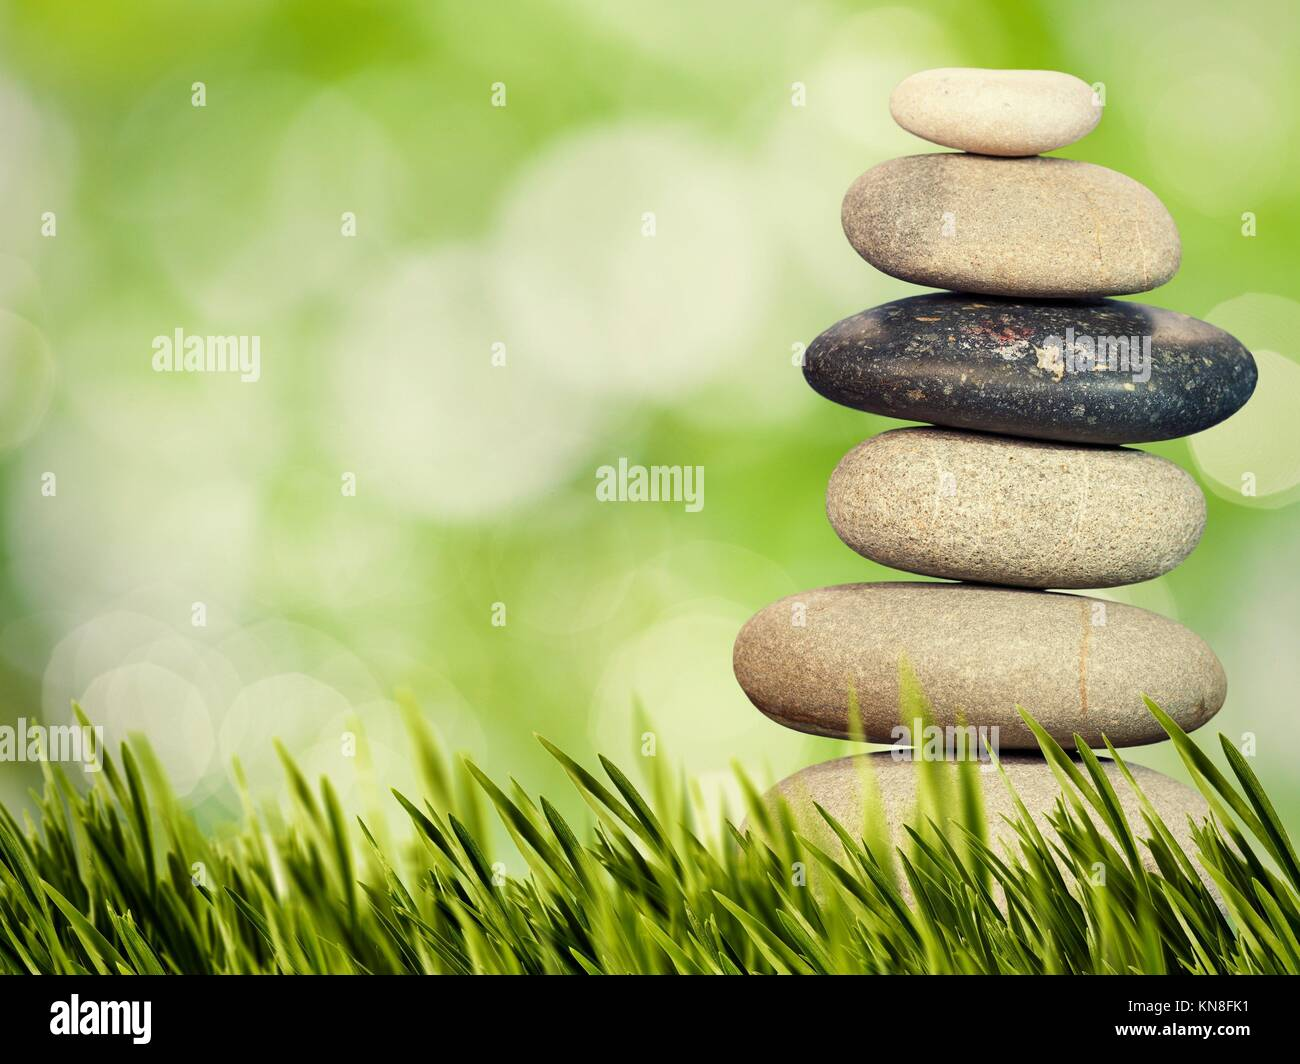 Wellness, health and natural harmony concept. Abstract natural backgrounds. - Stock Image